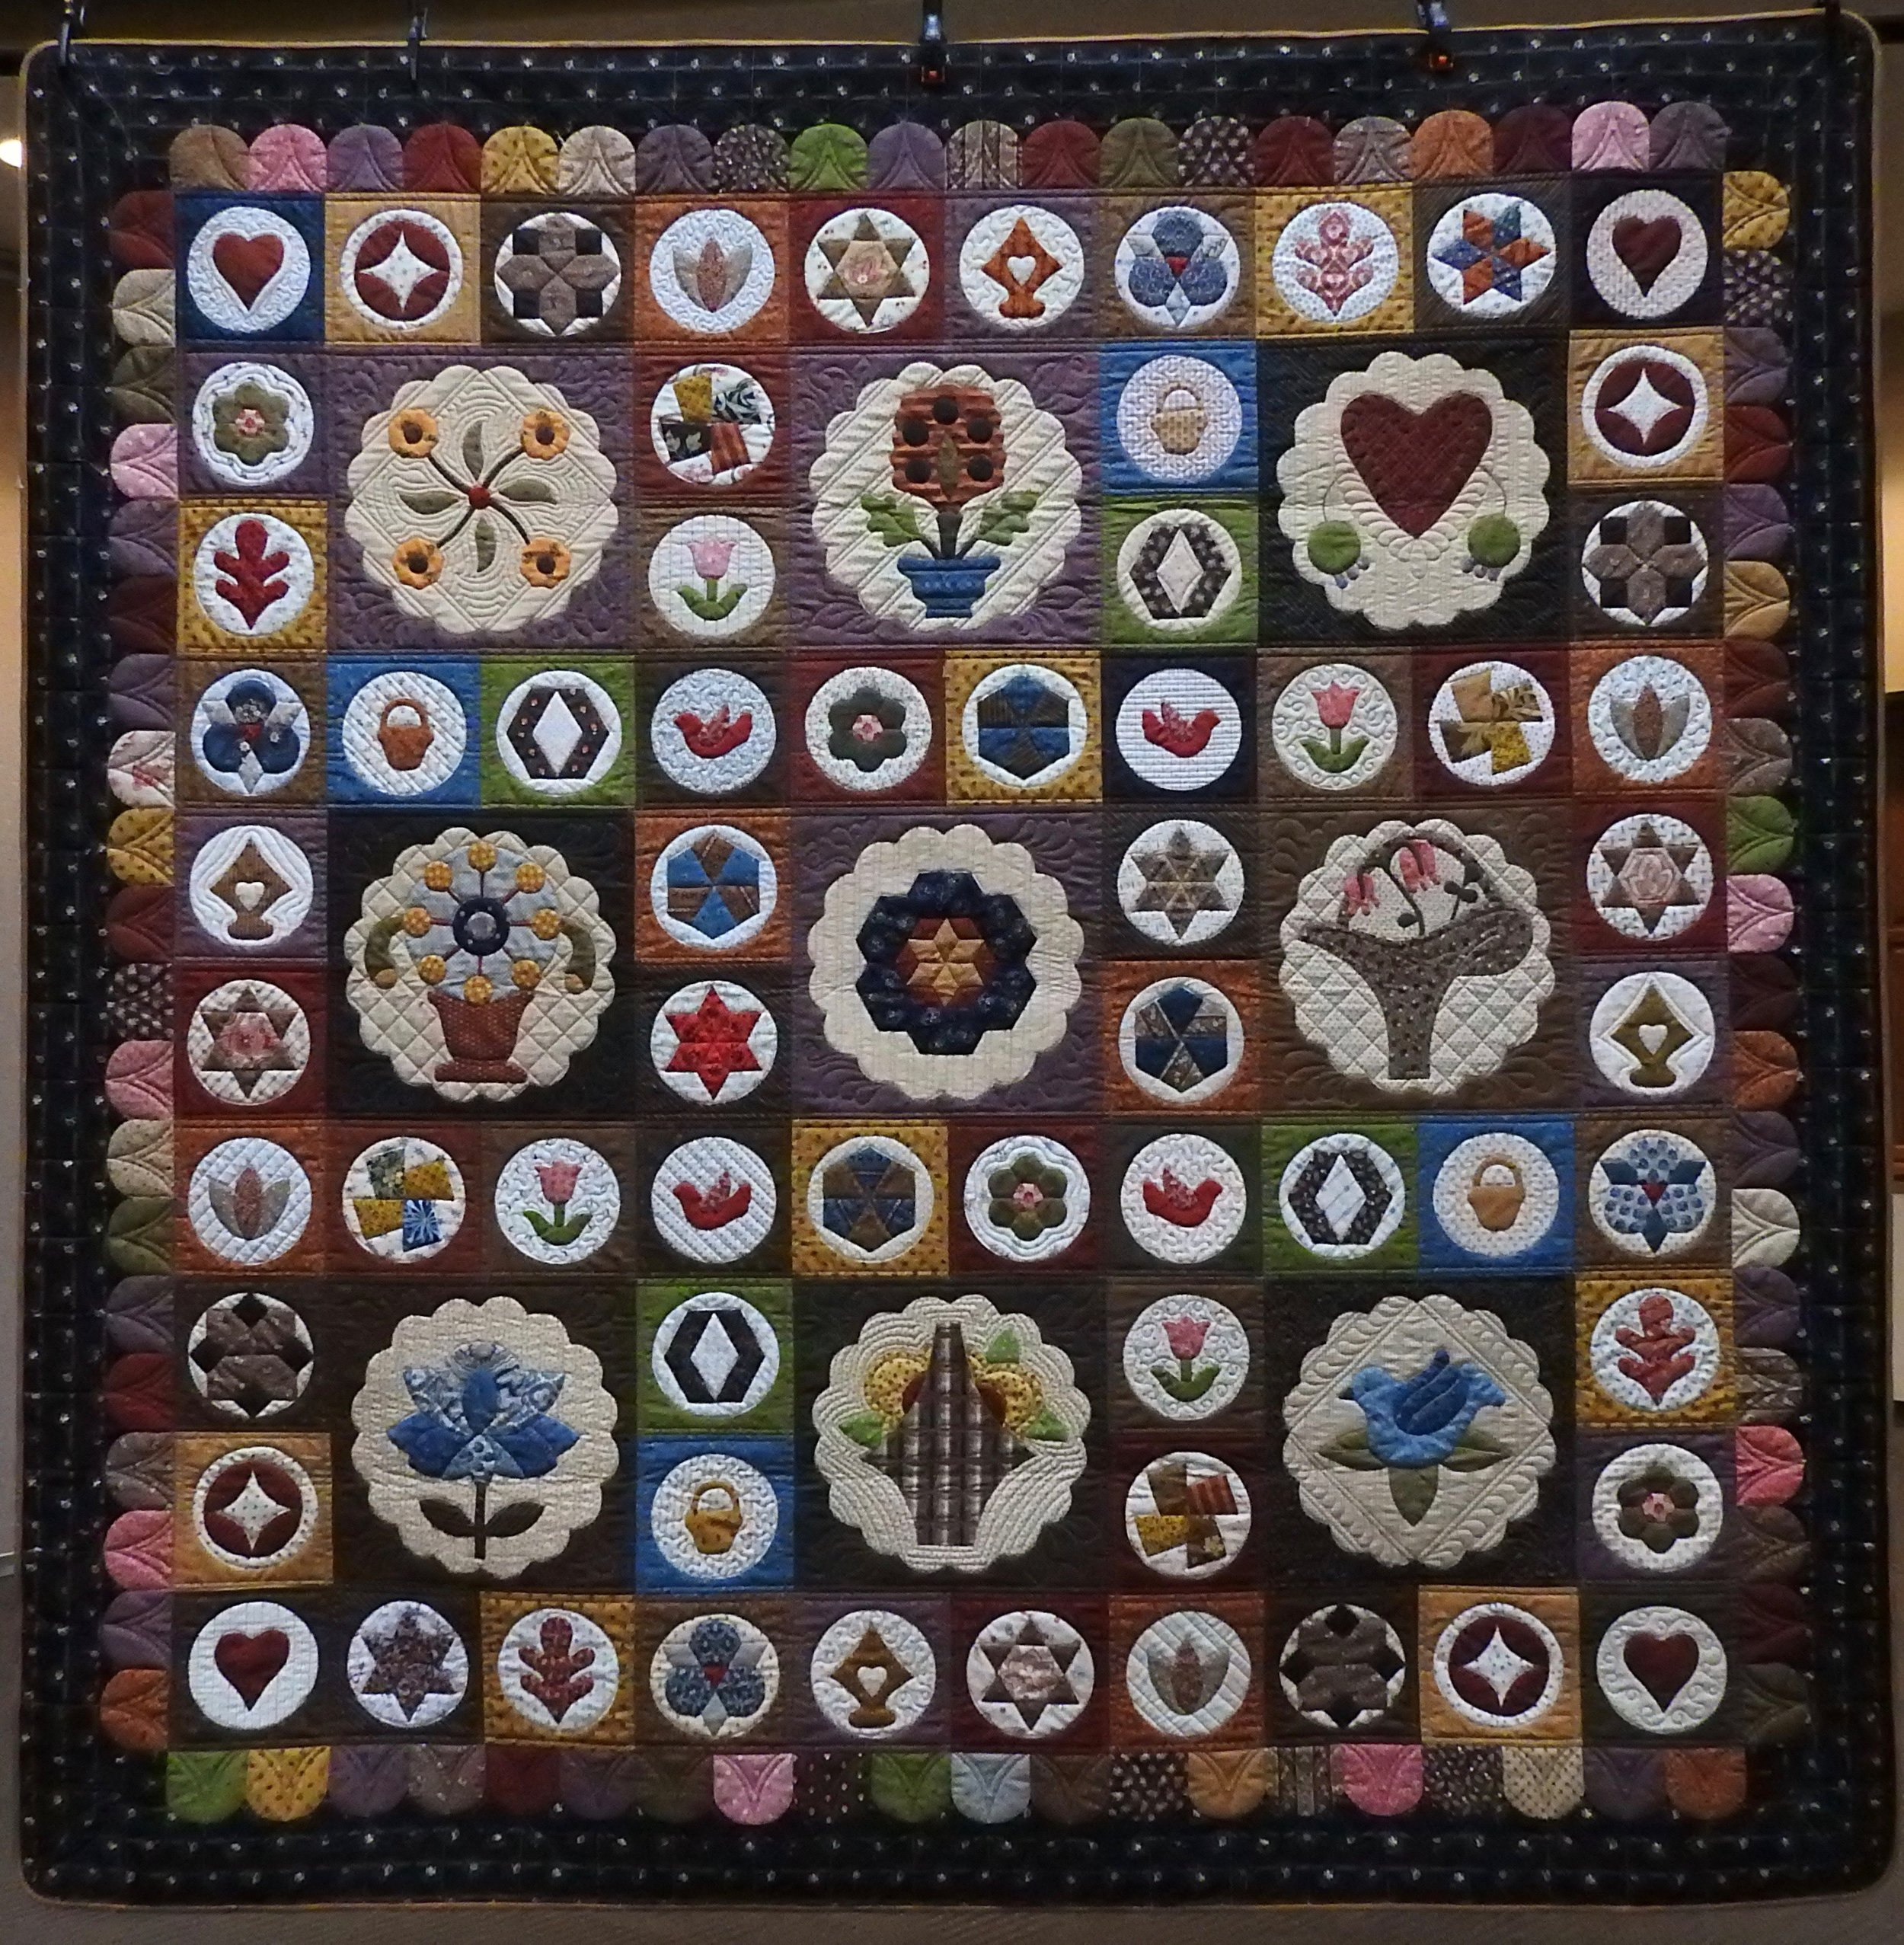 """Antique Sampler Quilt, Pieced & Appliquéd of New Fabrics by Edith Shanholt, pattern adapted from Antique Quilt by Sue Daley, Custom Machine Quilted, donated by Edith Shanholt, 72 x 72"""""""